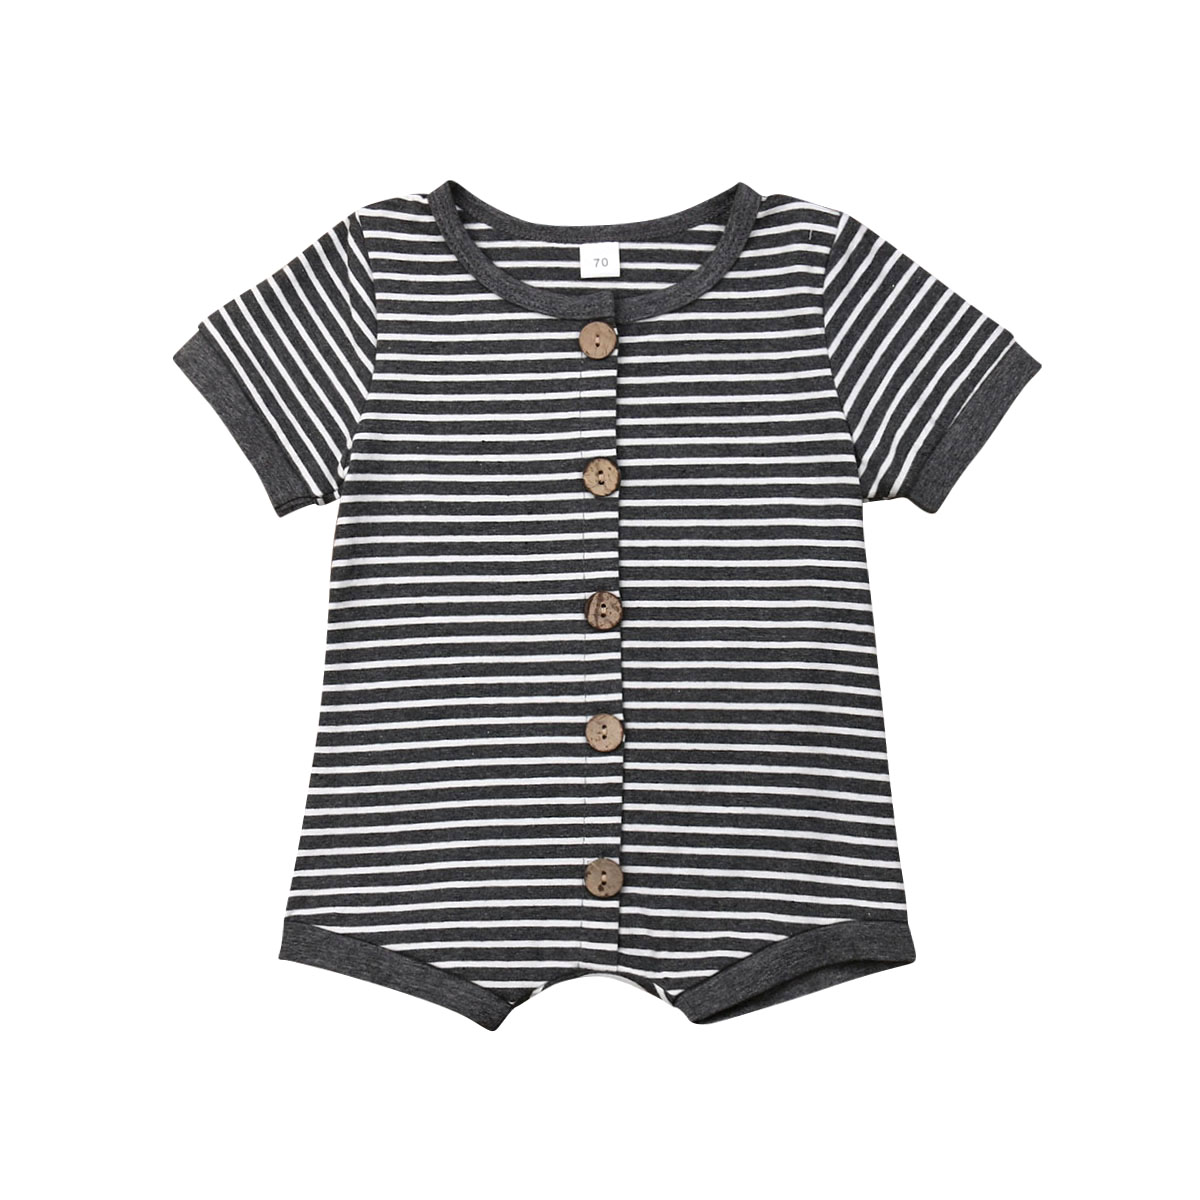 Infant Newborn Baby Boy Girl Stripe   Romper   One-pieces Jumpsuit Button Up Short Sleeve Outfits Coveralls Clothes Summer 2019